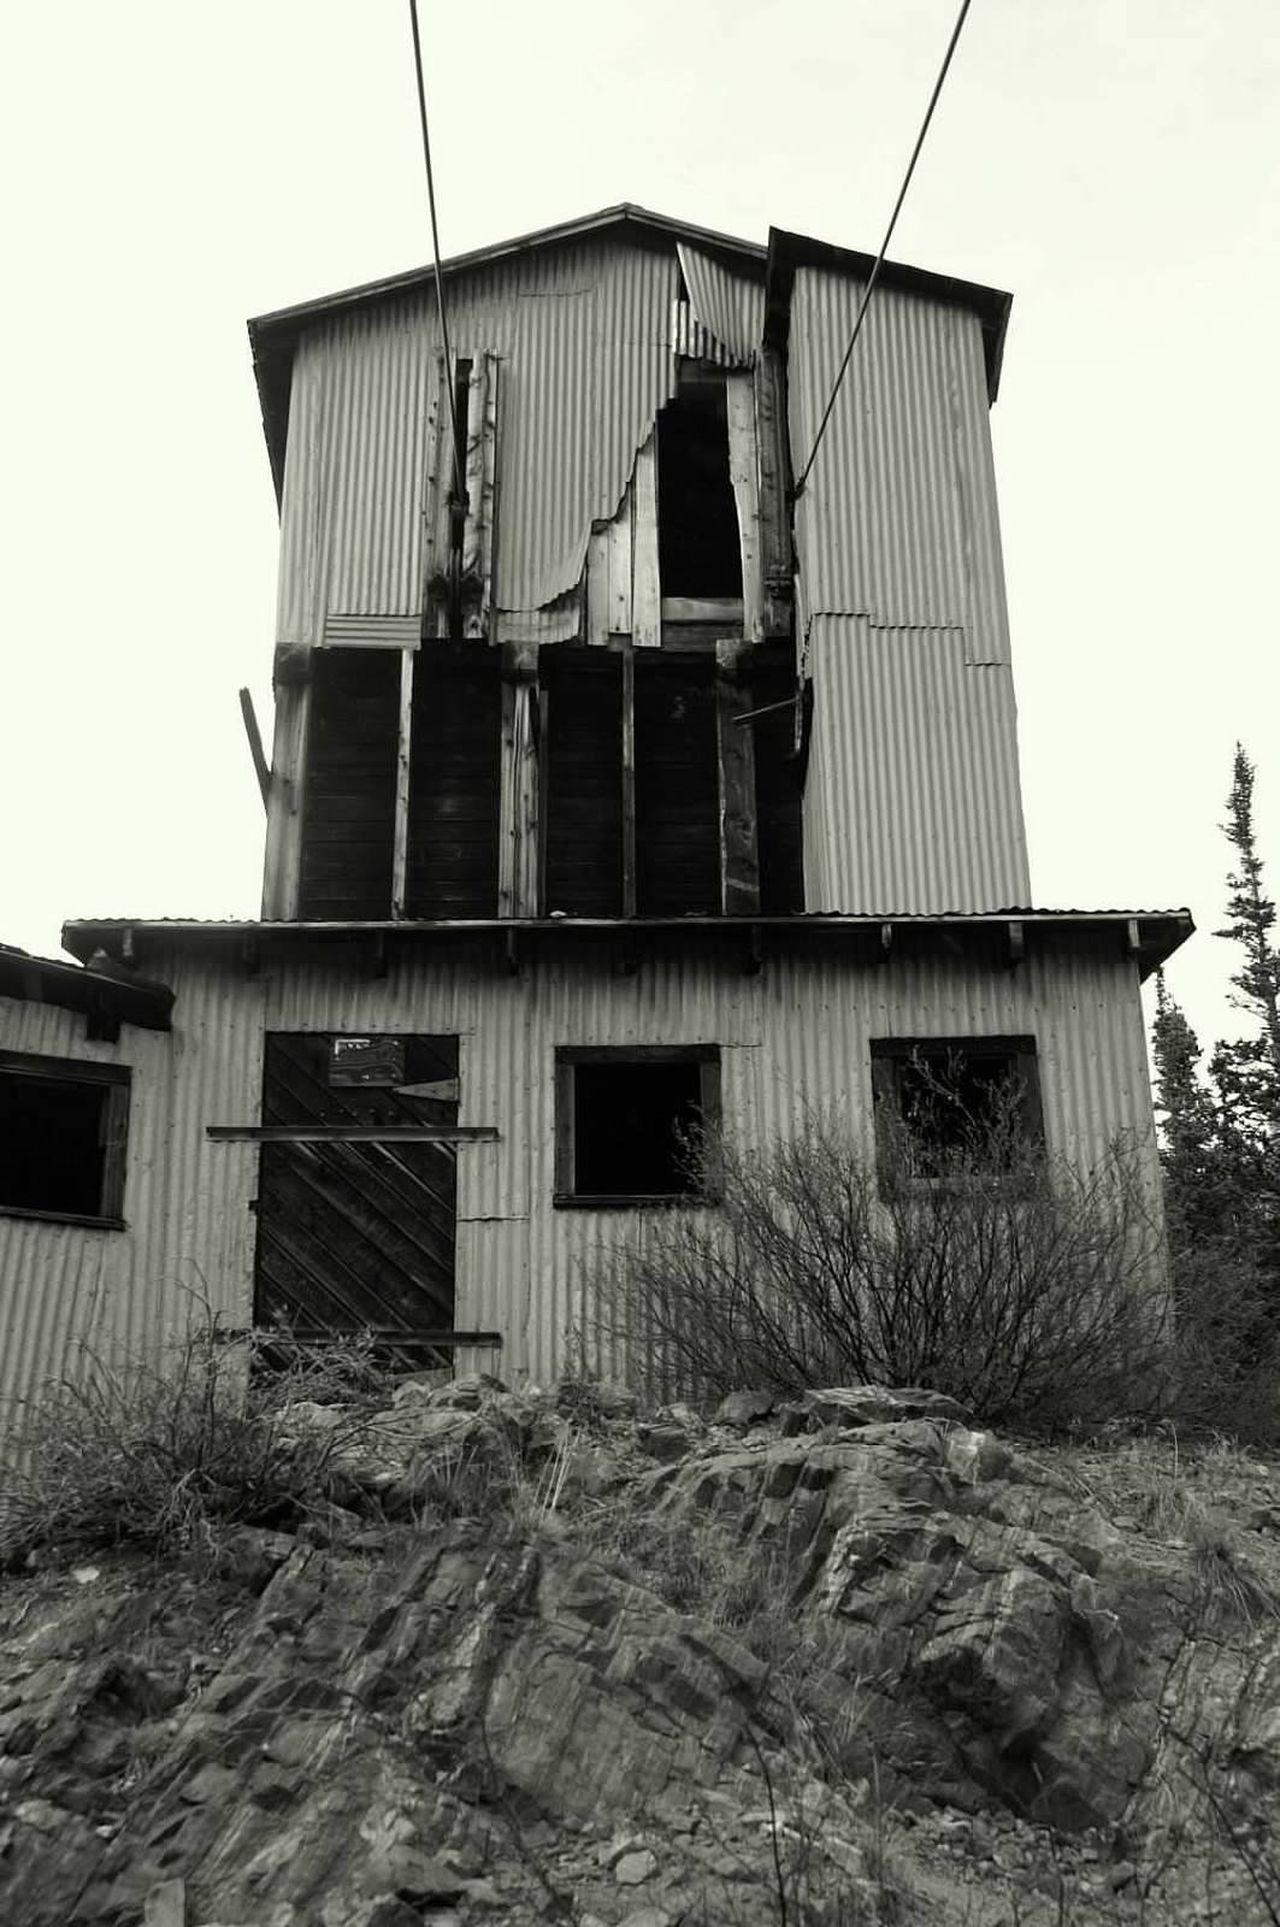 Abandoned Mining Built Structure Mining History Of America Mining Heritage